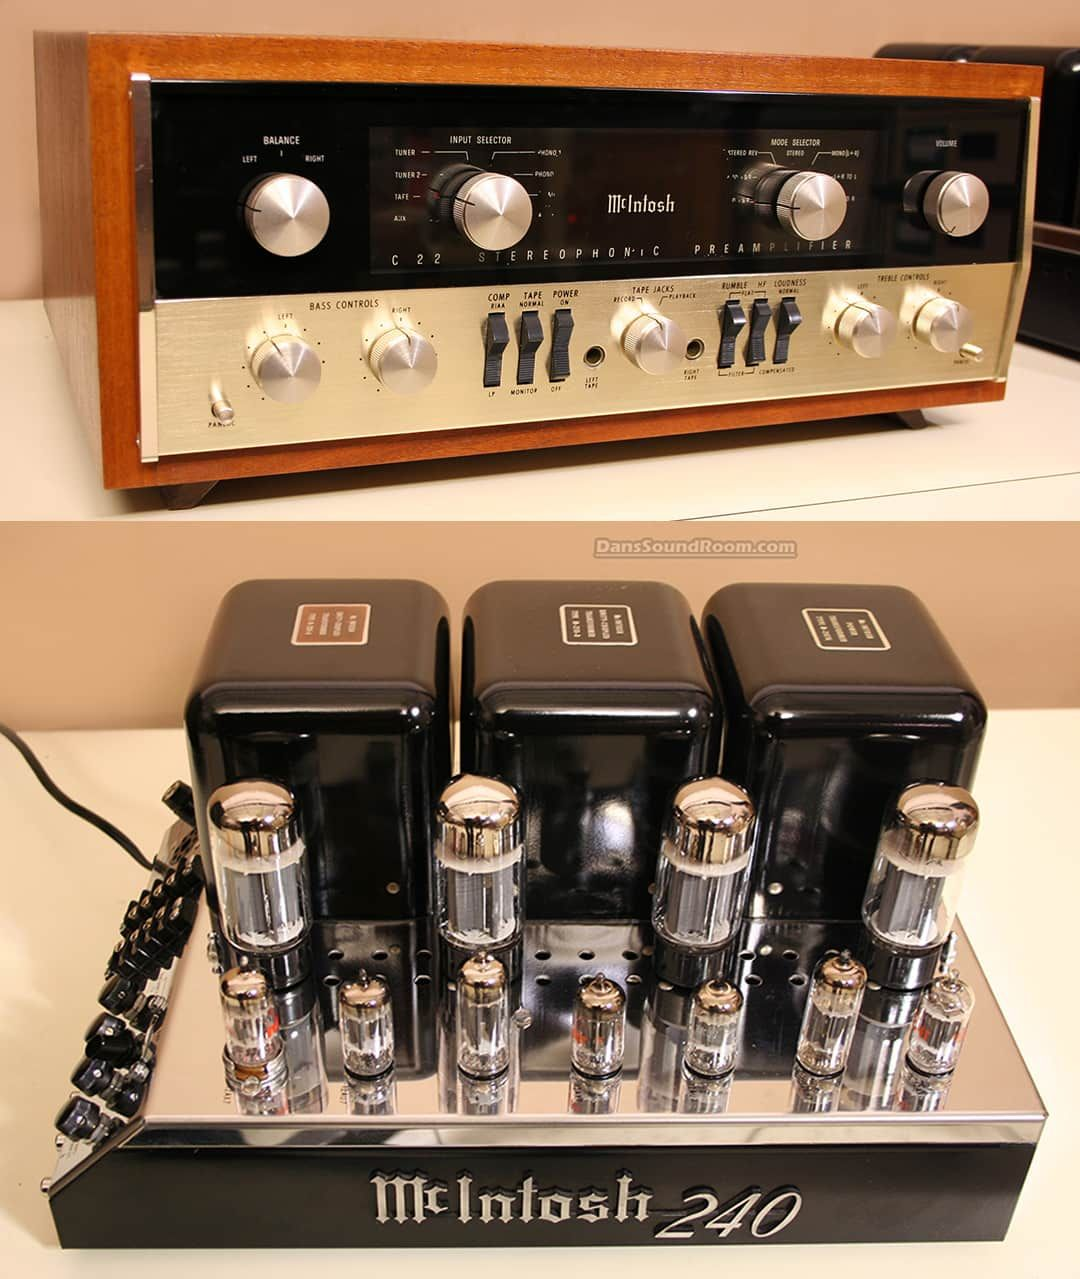 Mcintosh Hifi System C22 240 Preamplifier Power Amplifier All Tube Reverb